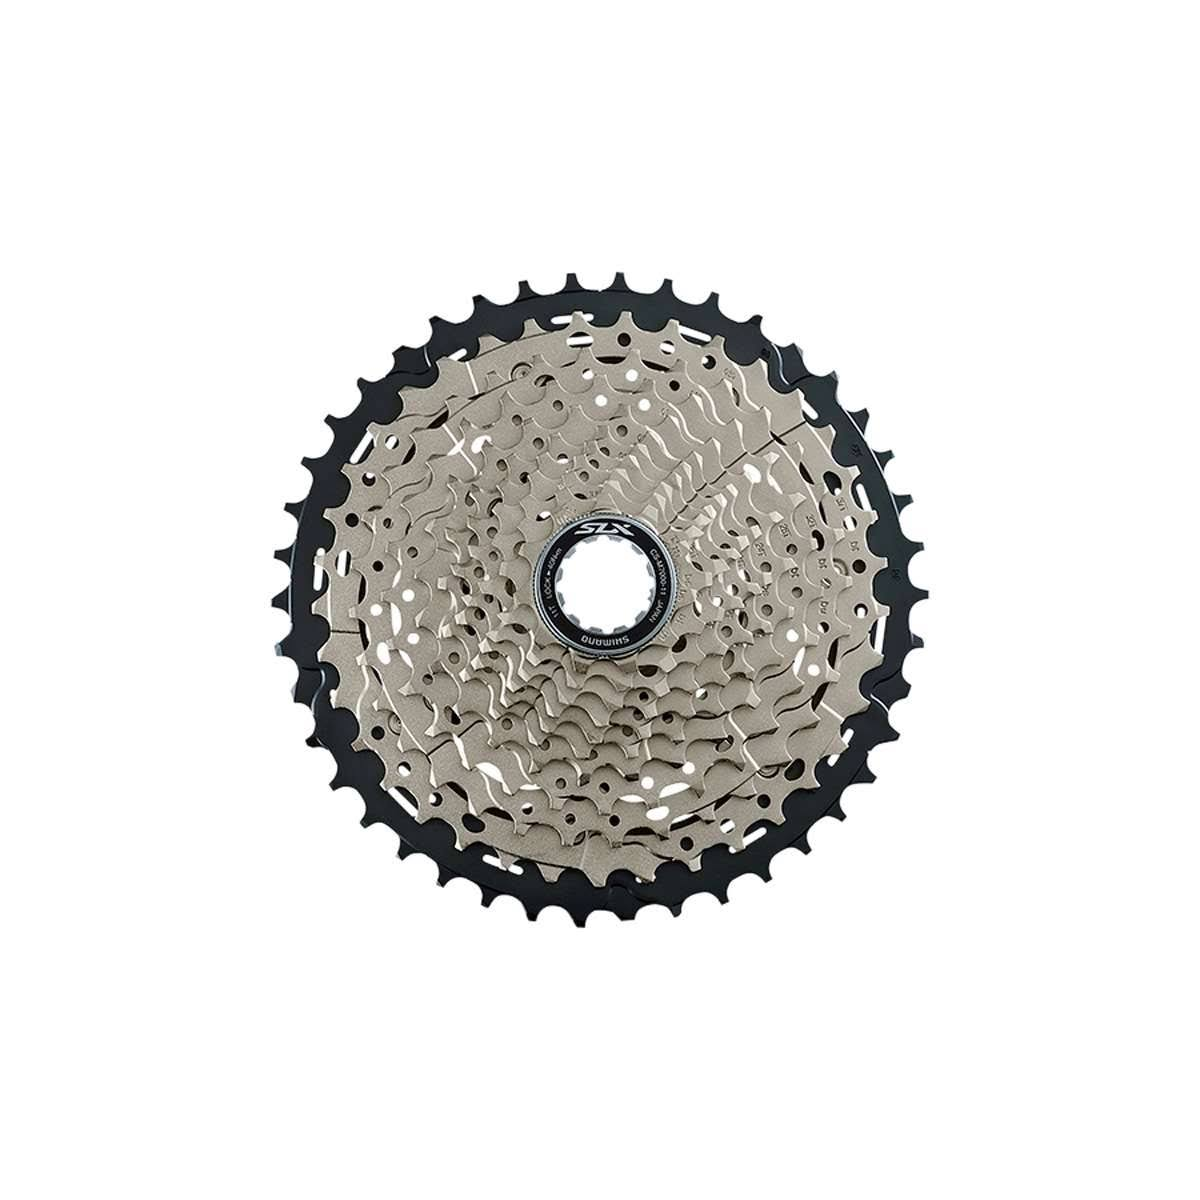 Shimano Cs M7000 Cassette Sprocket - 11 Speed